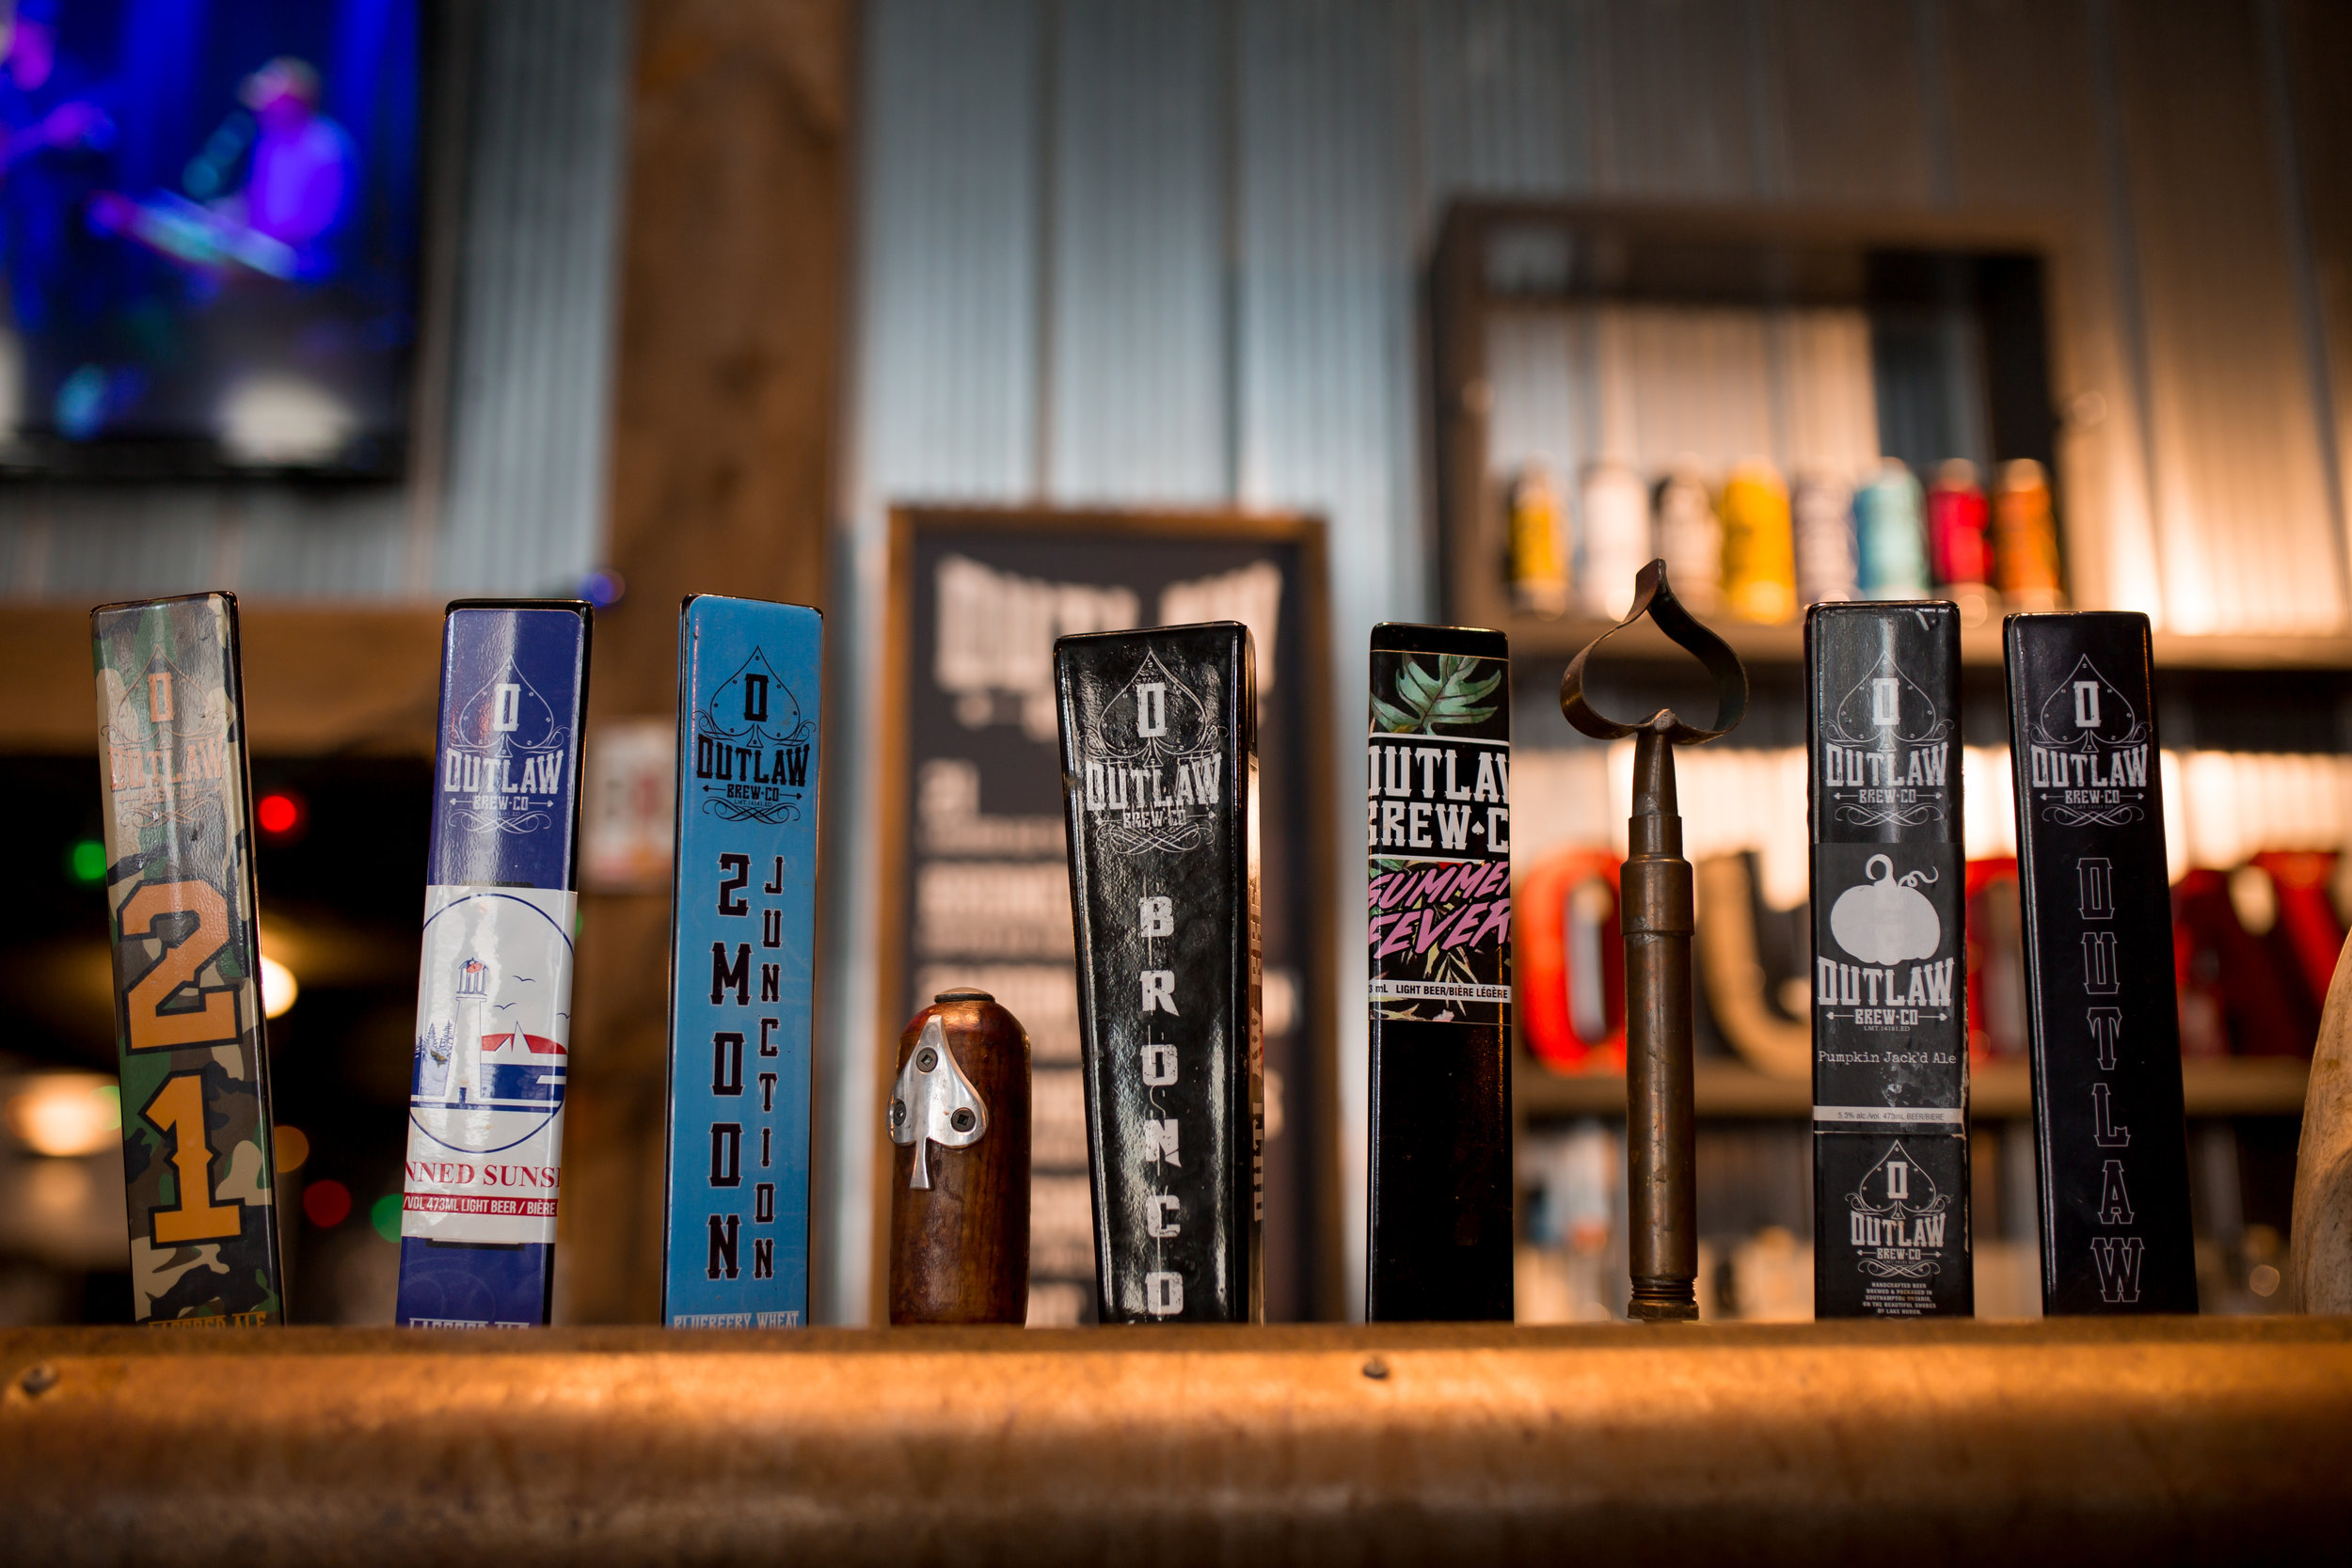 The Outlaw Brew collection includes;  21 Lagered Ale; Southampton Canned sunset; 2Moon Junction BlueBEERy Wheat; Outlaw BRONCO Copper Ale; Summer Fever IPA; Bandit Dark Ale; Sheriff IPA and; Southern Lass